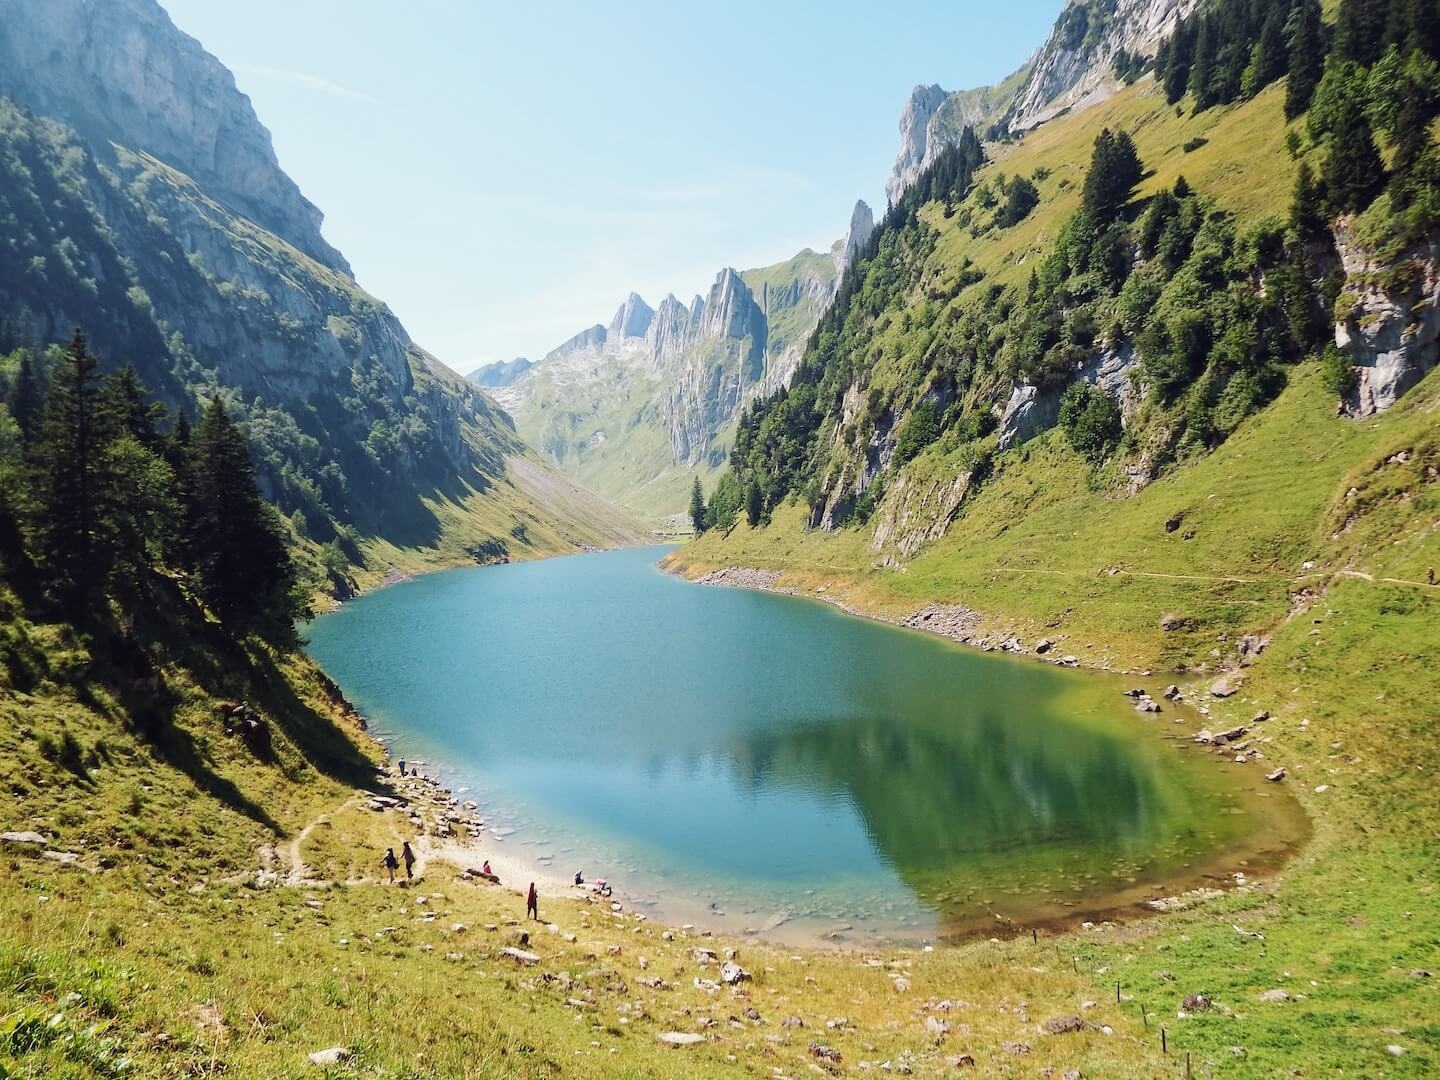 Fählensee, Culinary Hiking Trails in Switzerland | Moon & Honey Travel